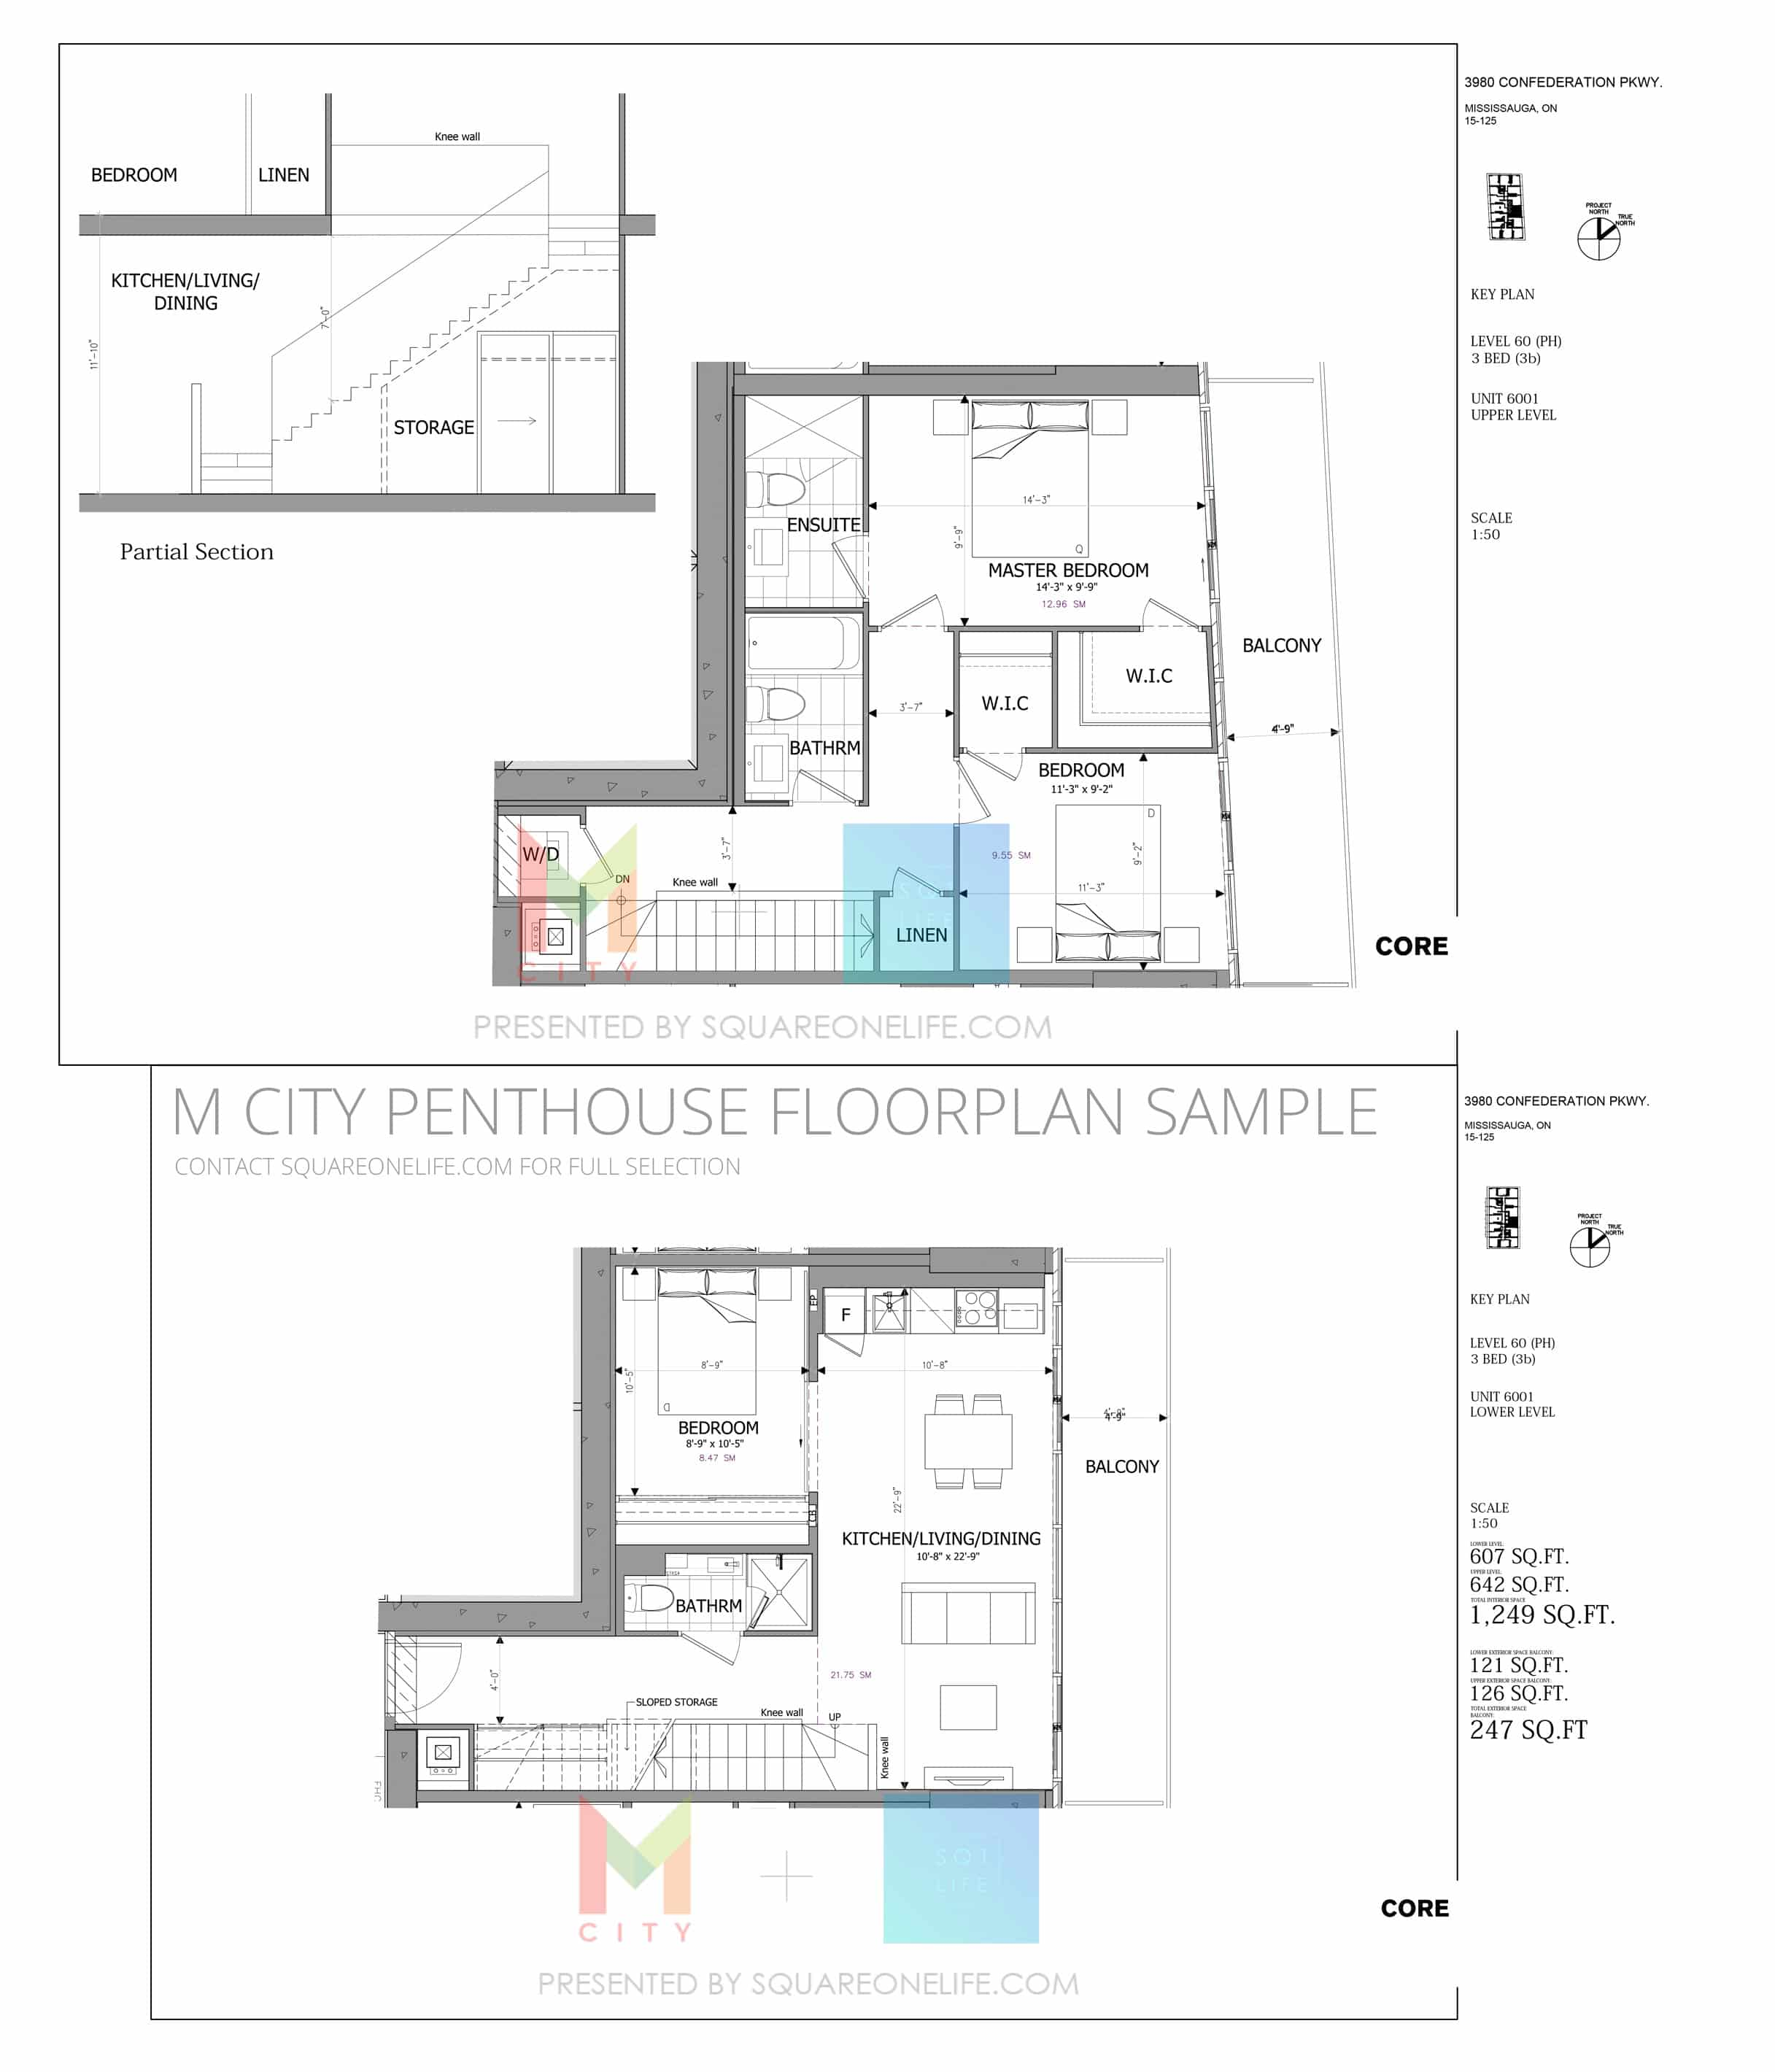 m city penthouses M CITY Penthouses Now Released m city penthouses m city penthouse collection m city condos rogers condos penthouses square one condos mississauga condos m city penthouse floorplans